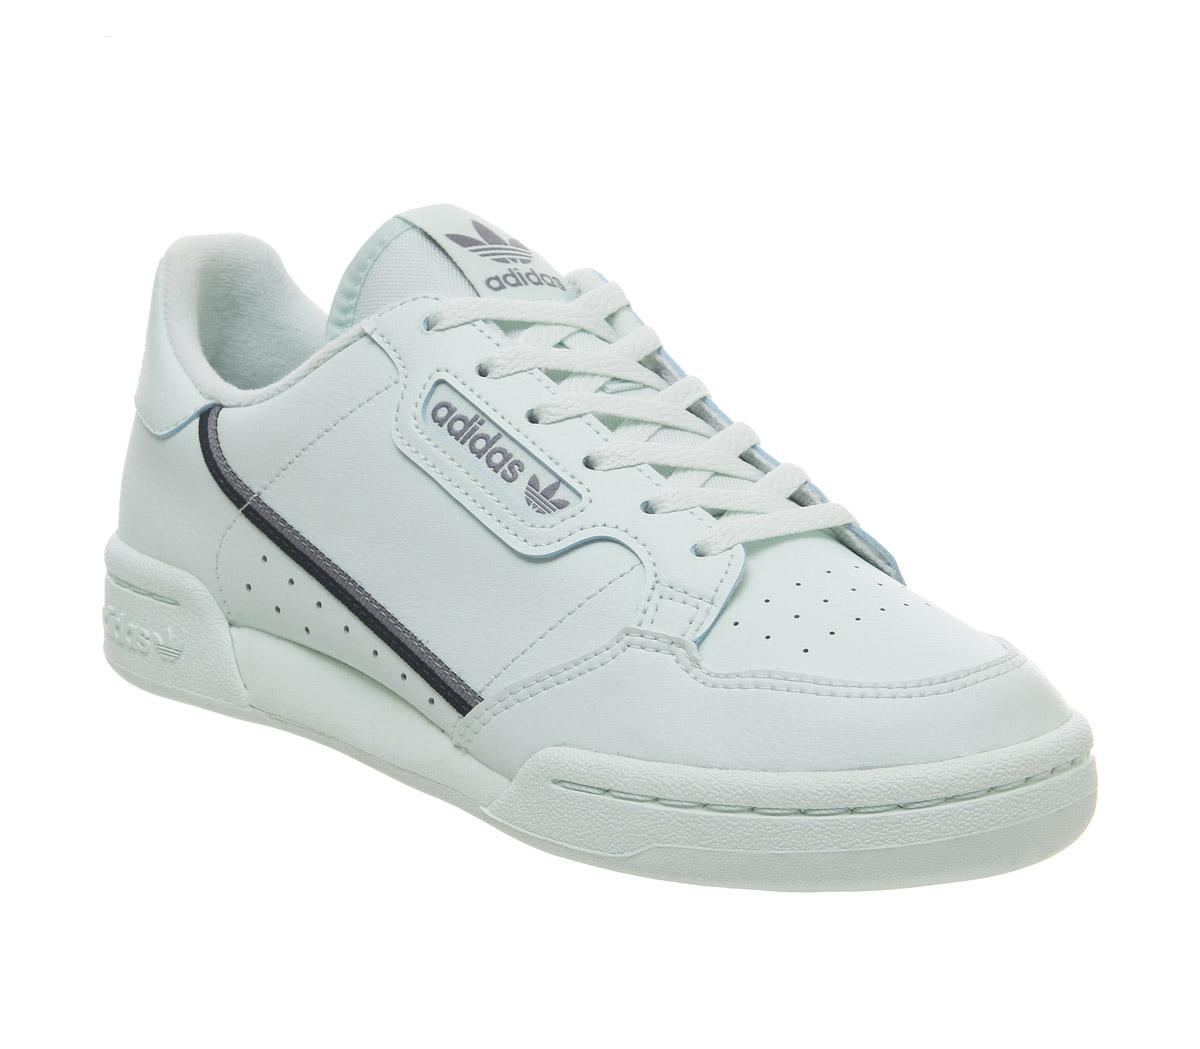 adidas Continental 80's Jnr Trainers